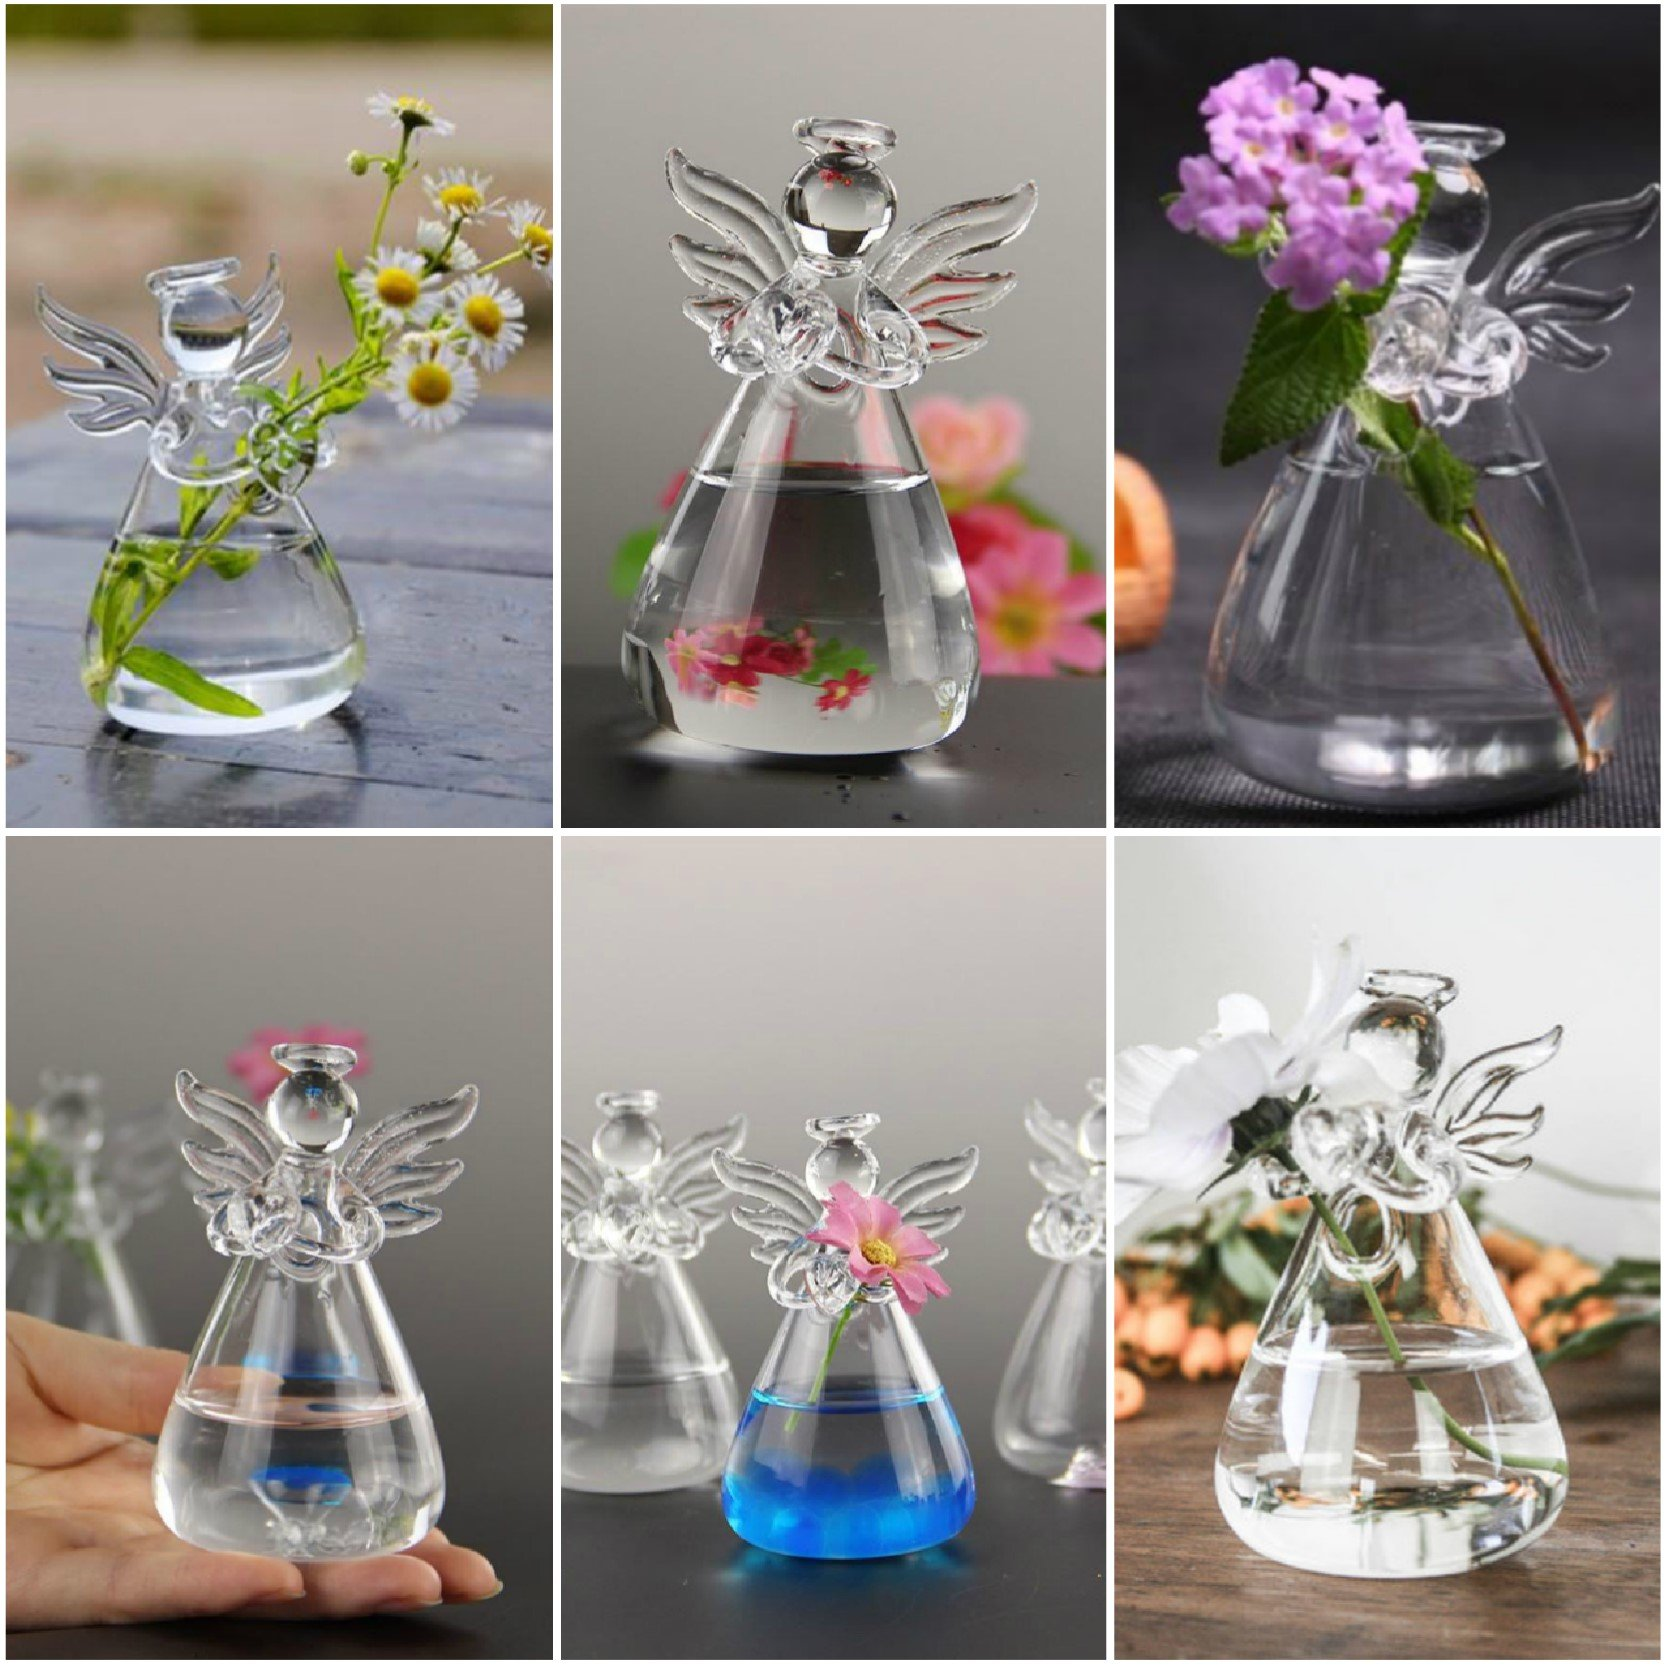 Flower Girl Gifts - Make the Little Angels Happy (Humble Household)